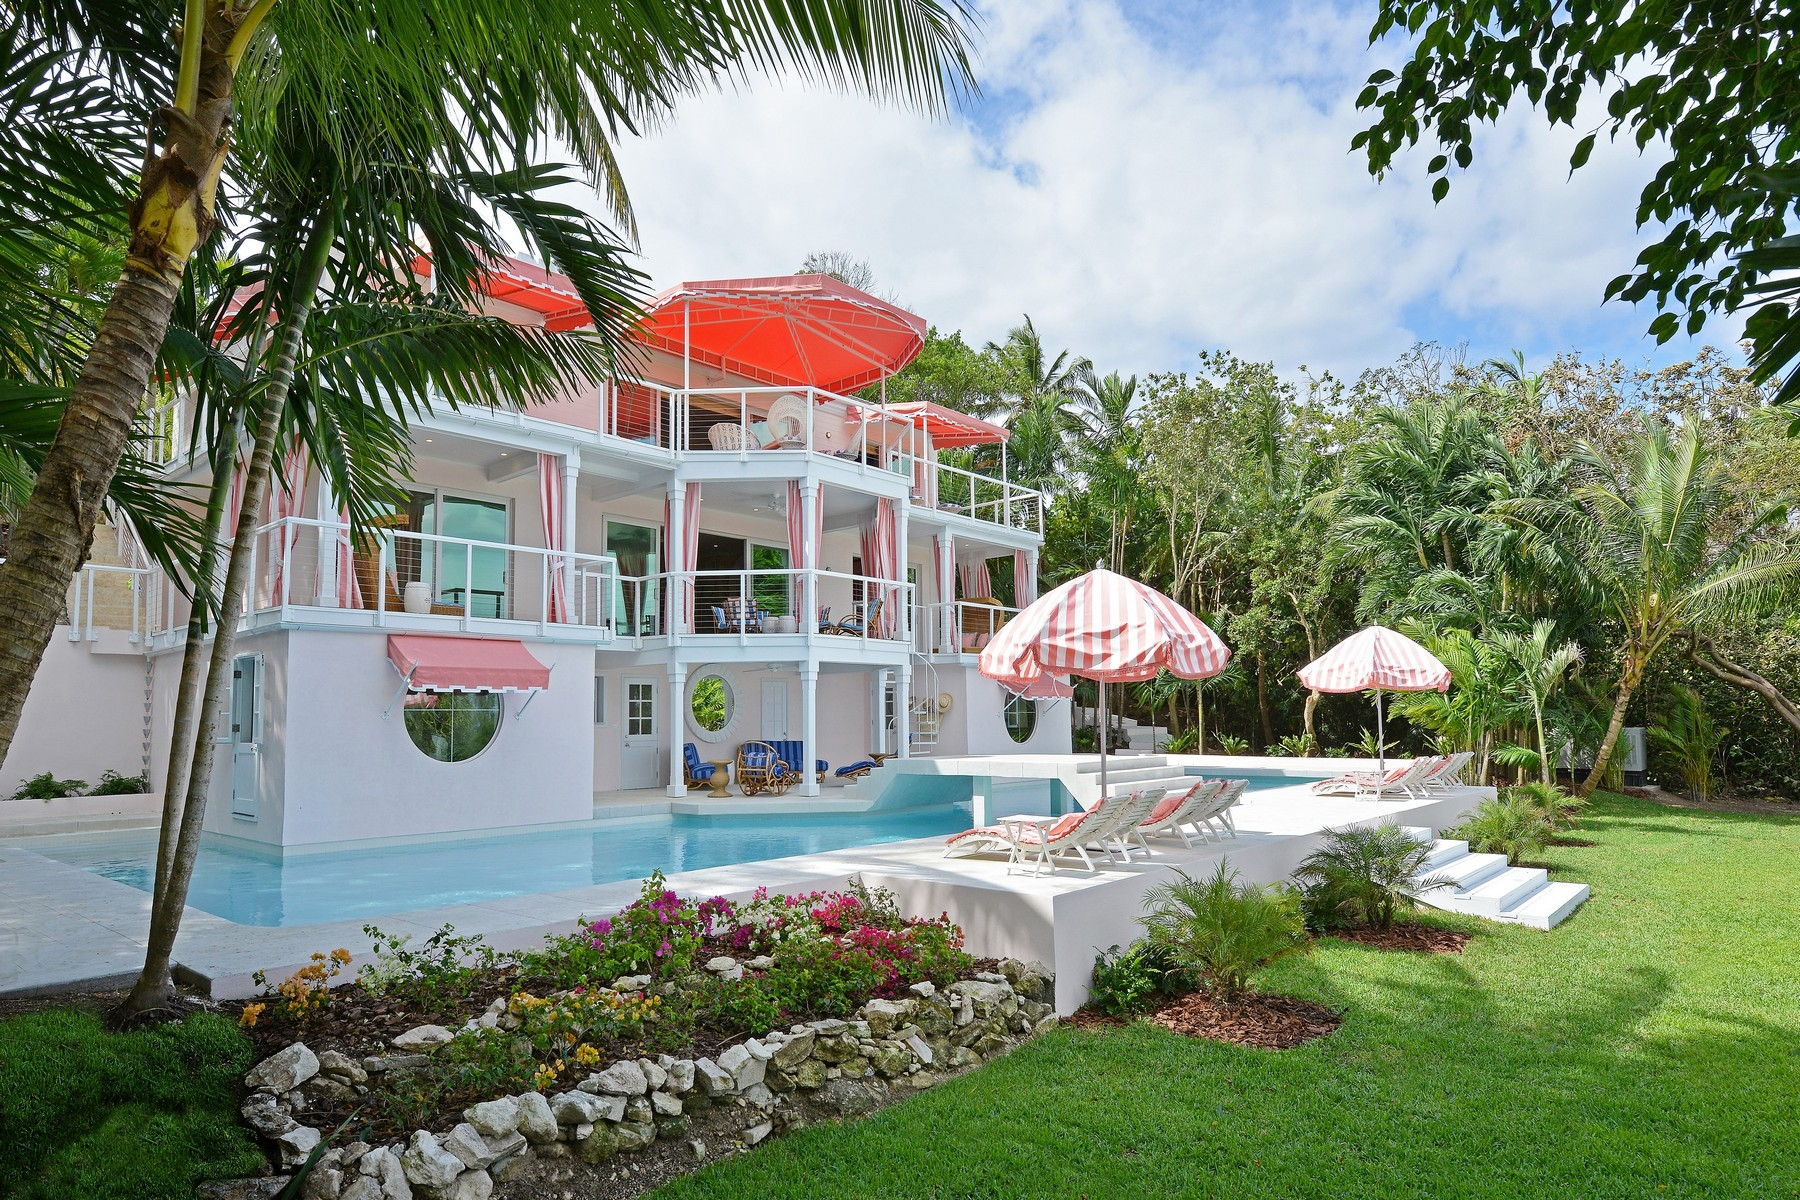 Single Family Home for Sale at Minor Cay Lyford Cay, Nassau And Paradise Island Bahamas